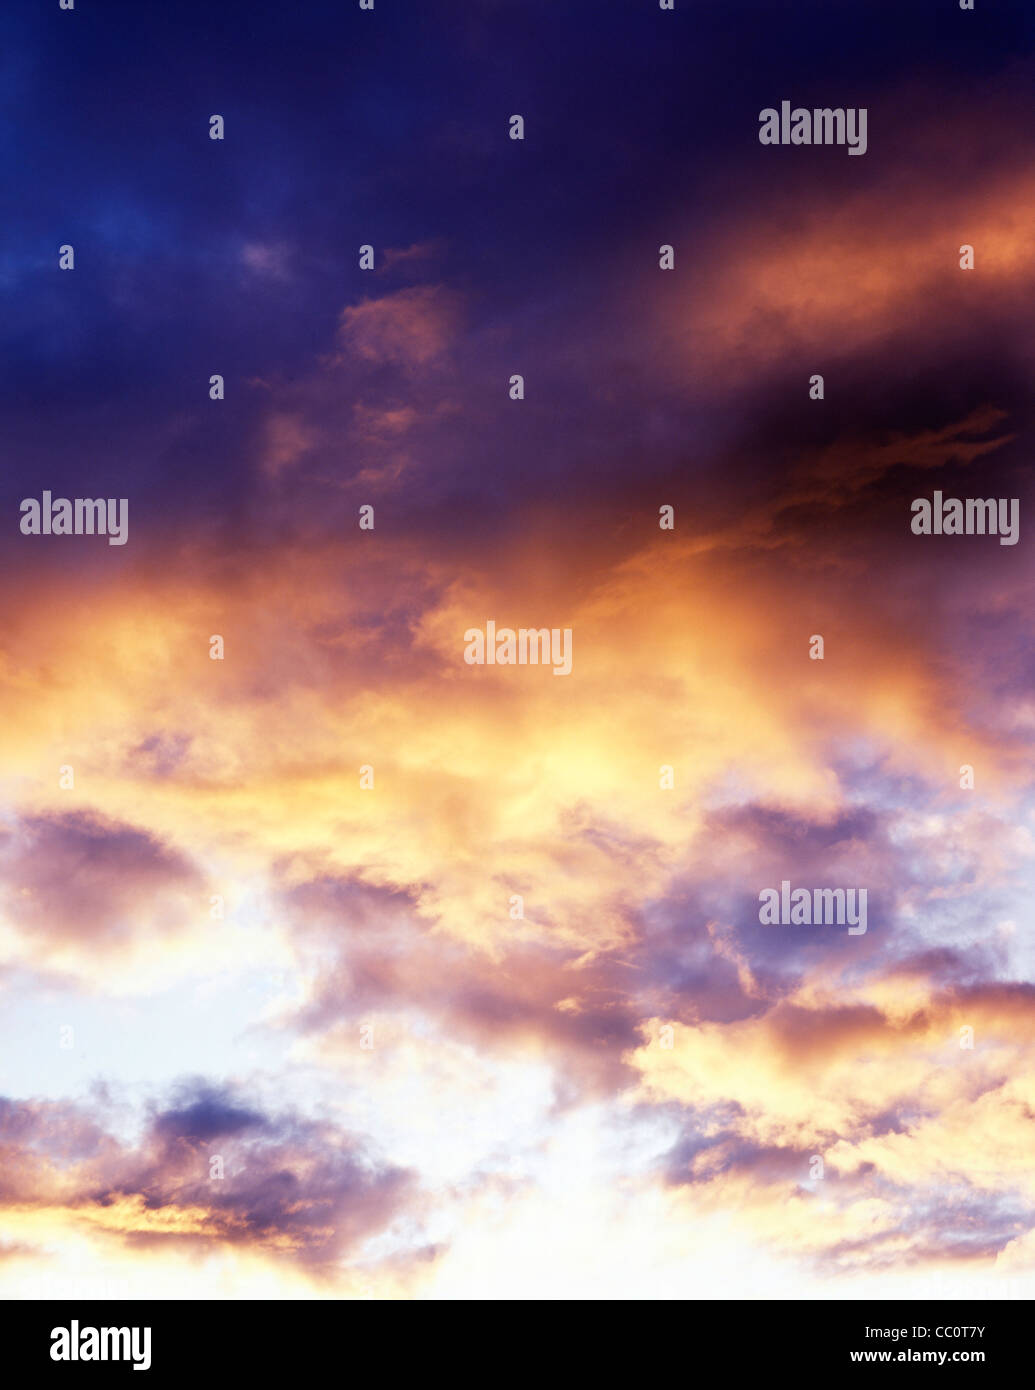 Red Clouds at Sunset or Morning - Stock Image